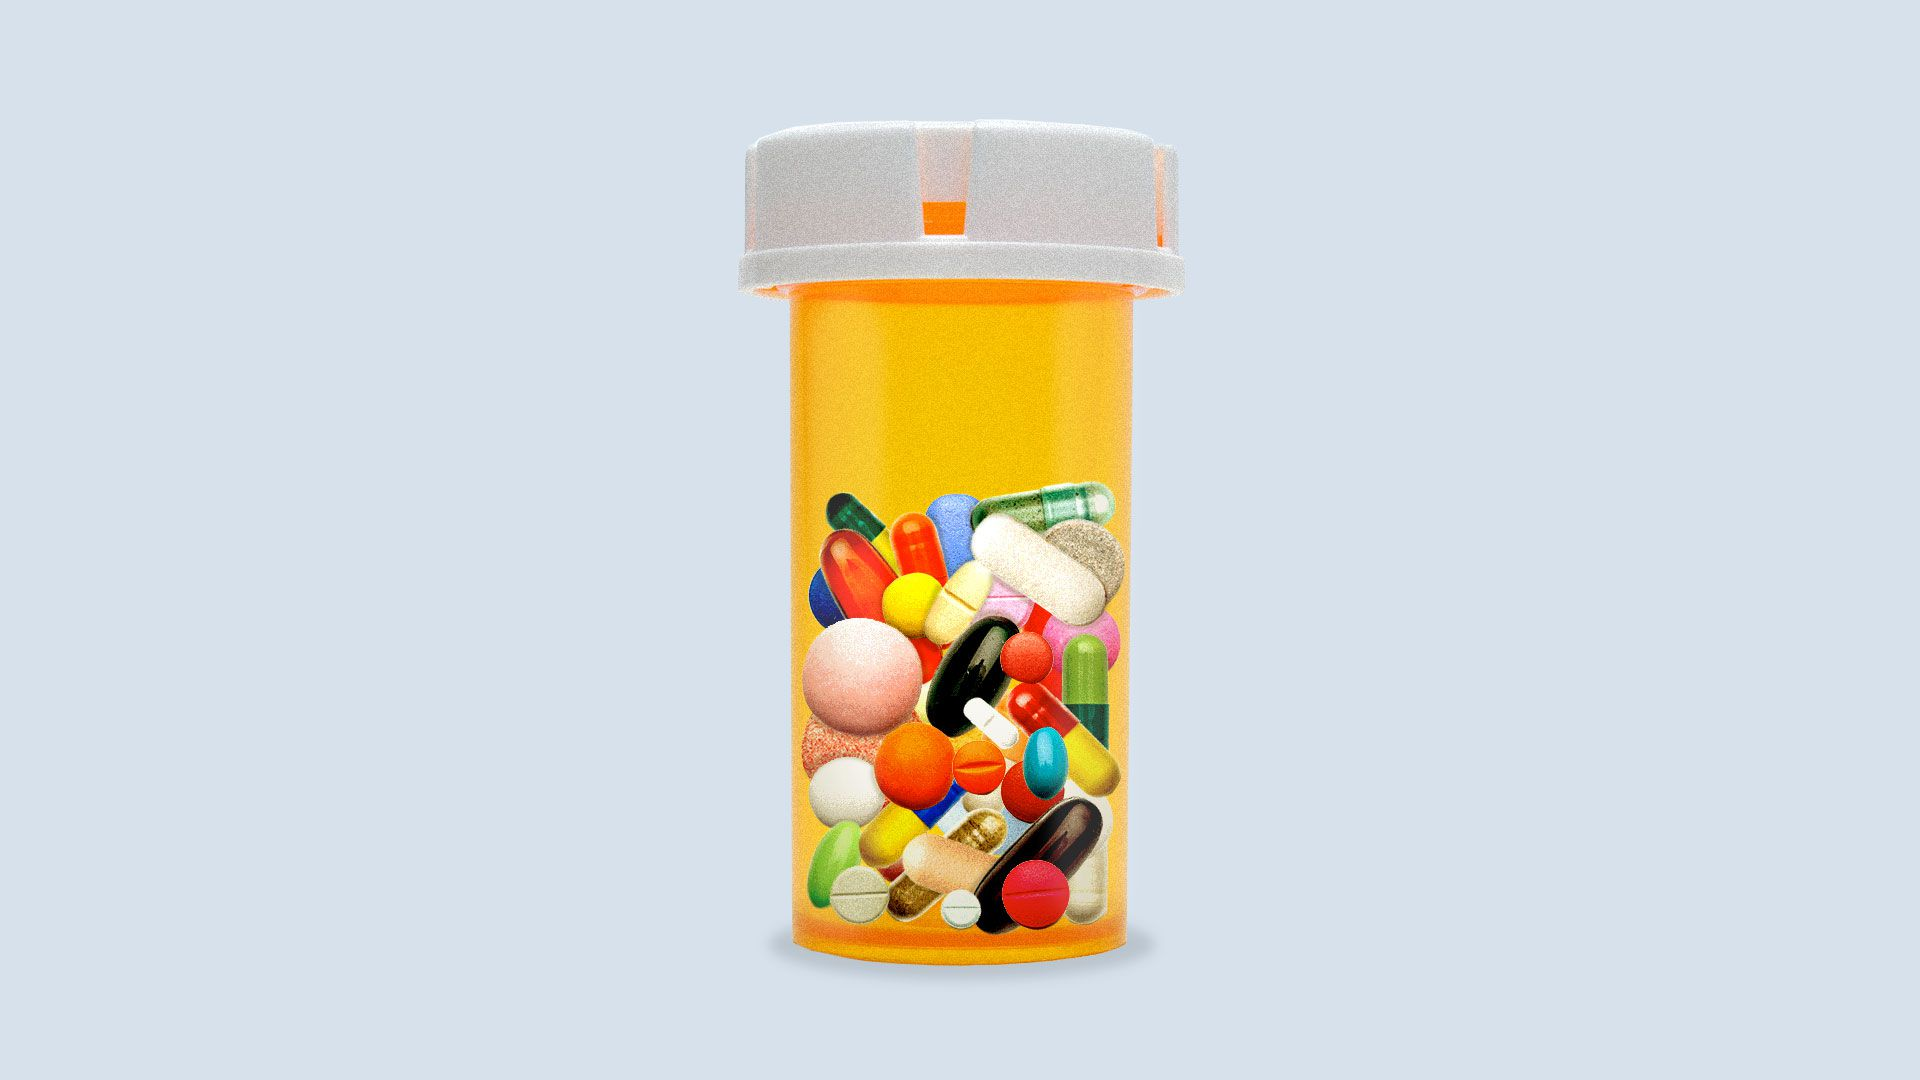 Illustration of pill bottle filled with pills of all shapes and colors